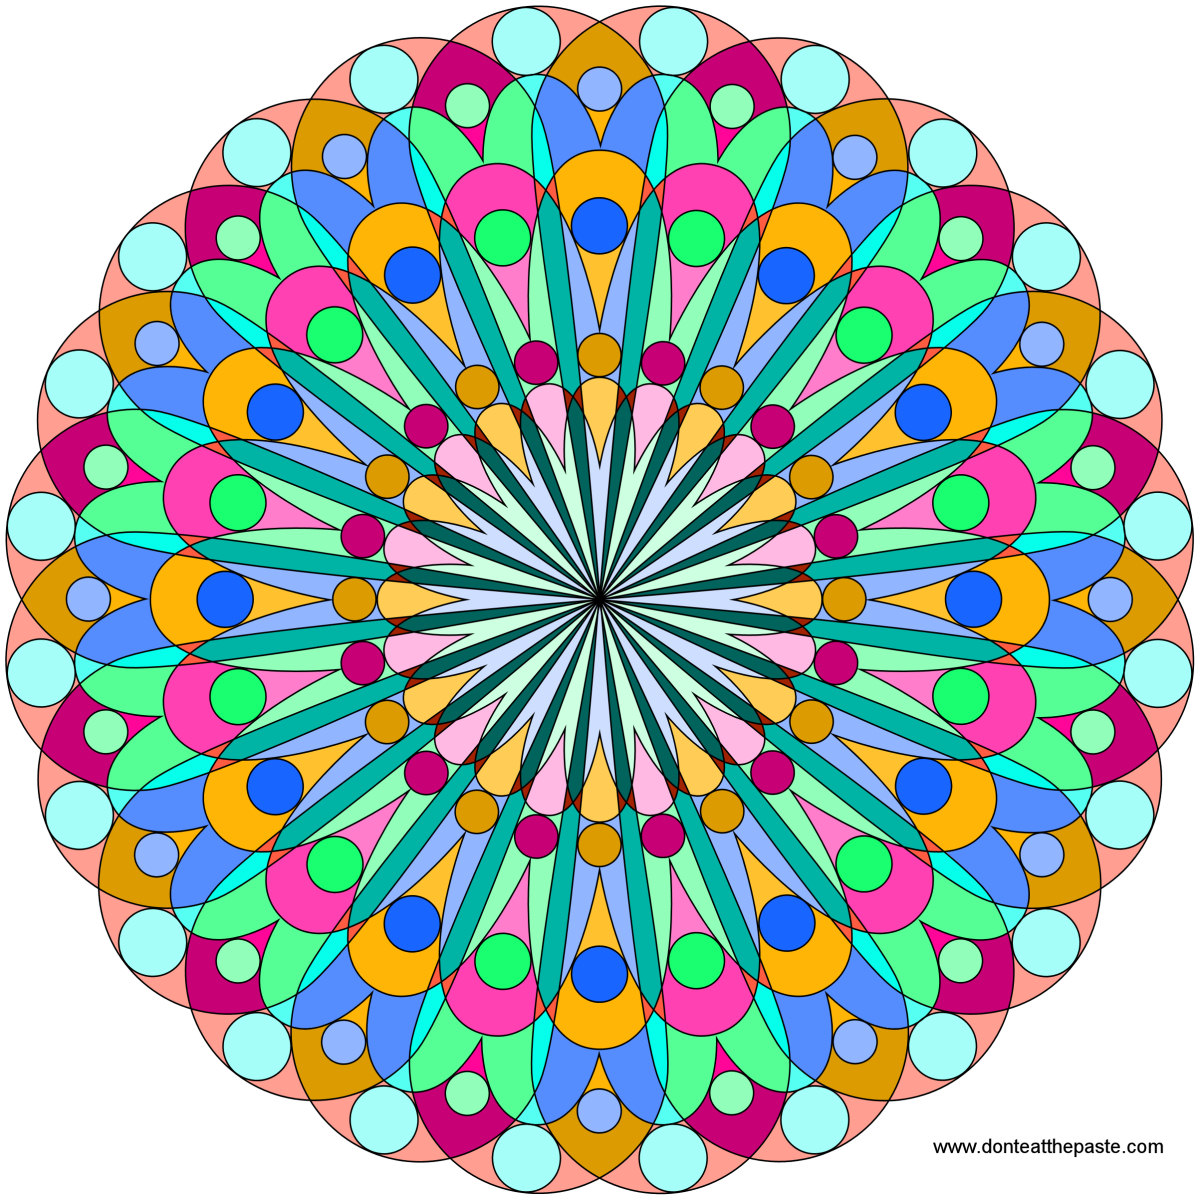 mandala- blank version available to color